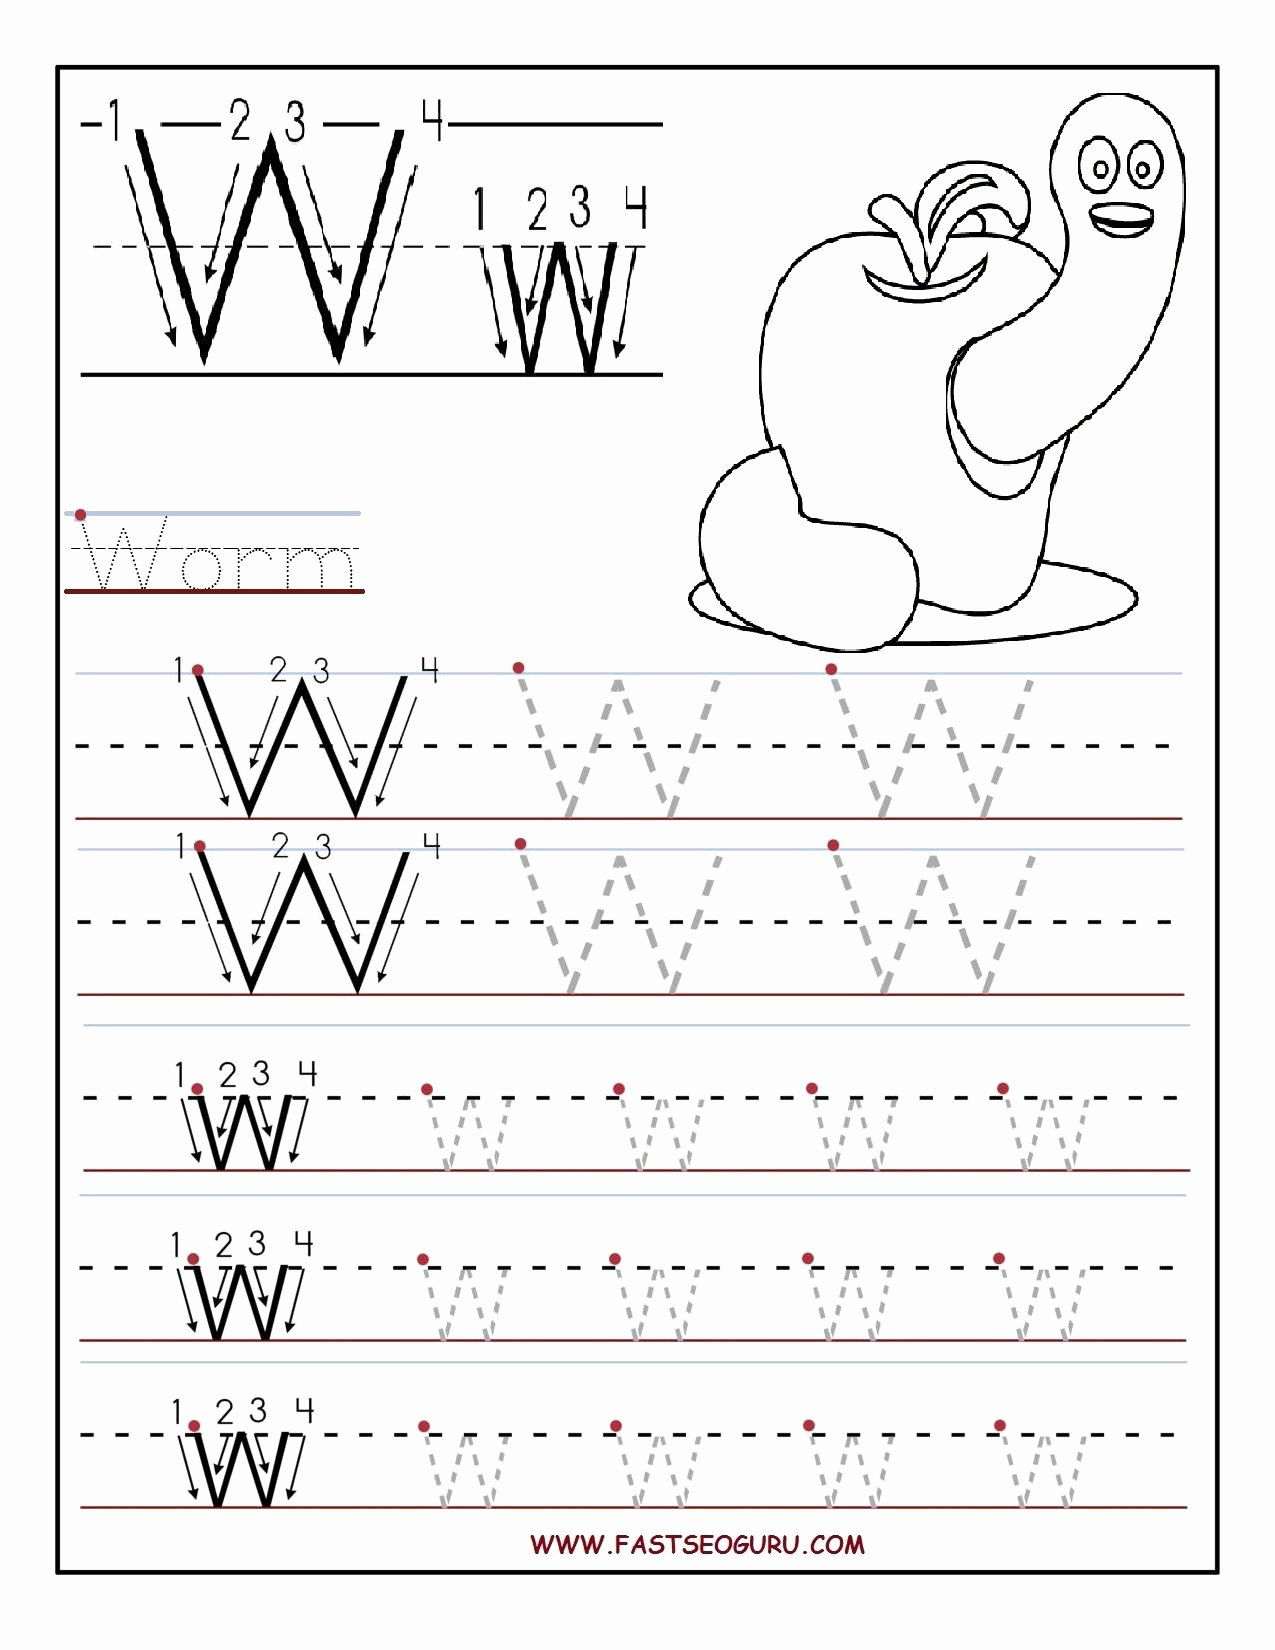 Letter W Worksheets for Preschoolers New Printable Letter W Tracing Worksheets for Preschool